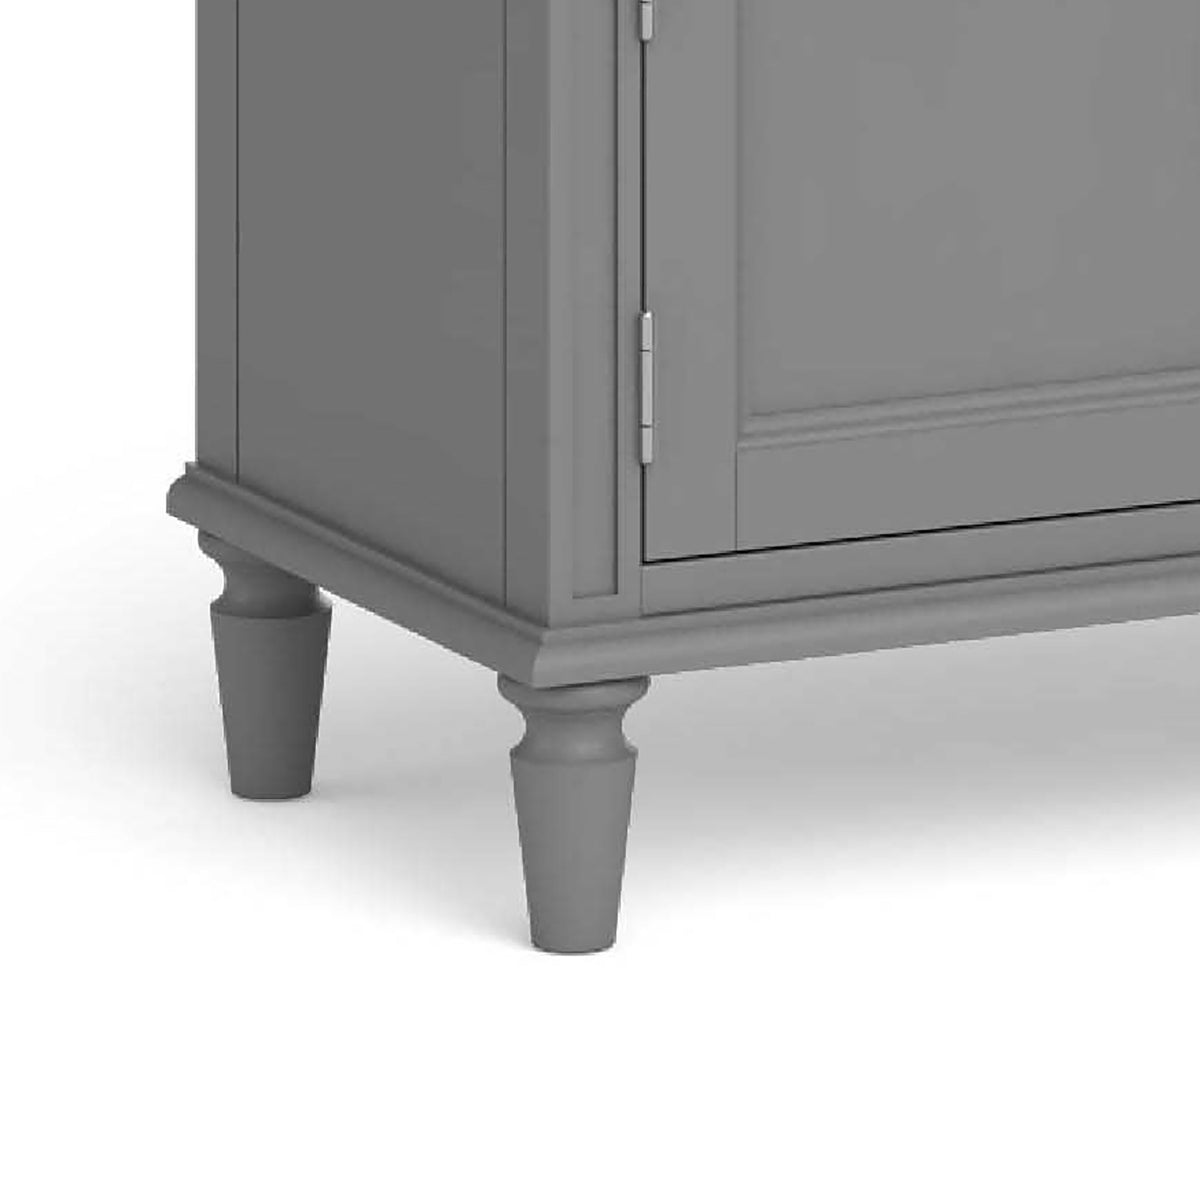 Mulsanne Grey Large Sideboard - Close Up of Feet